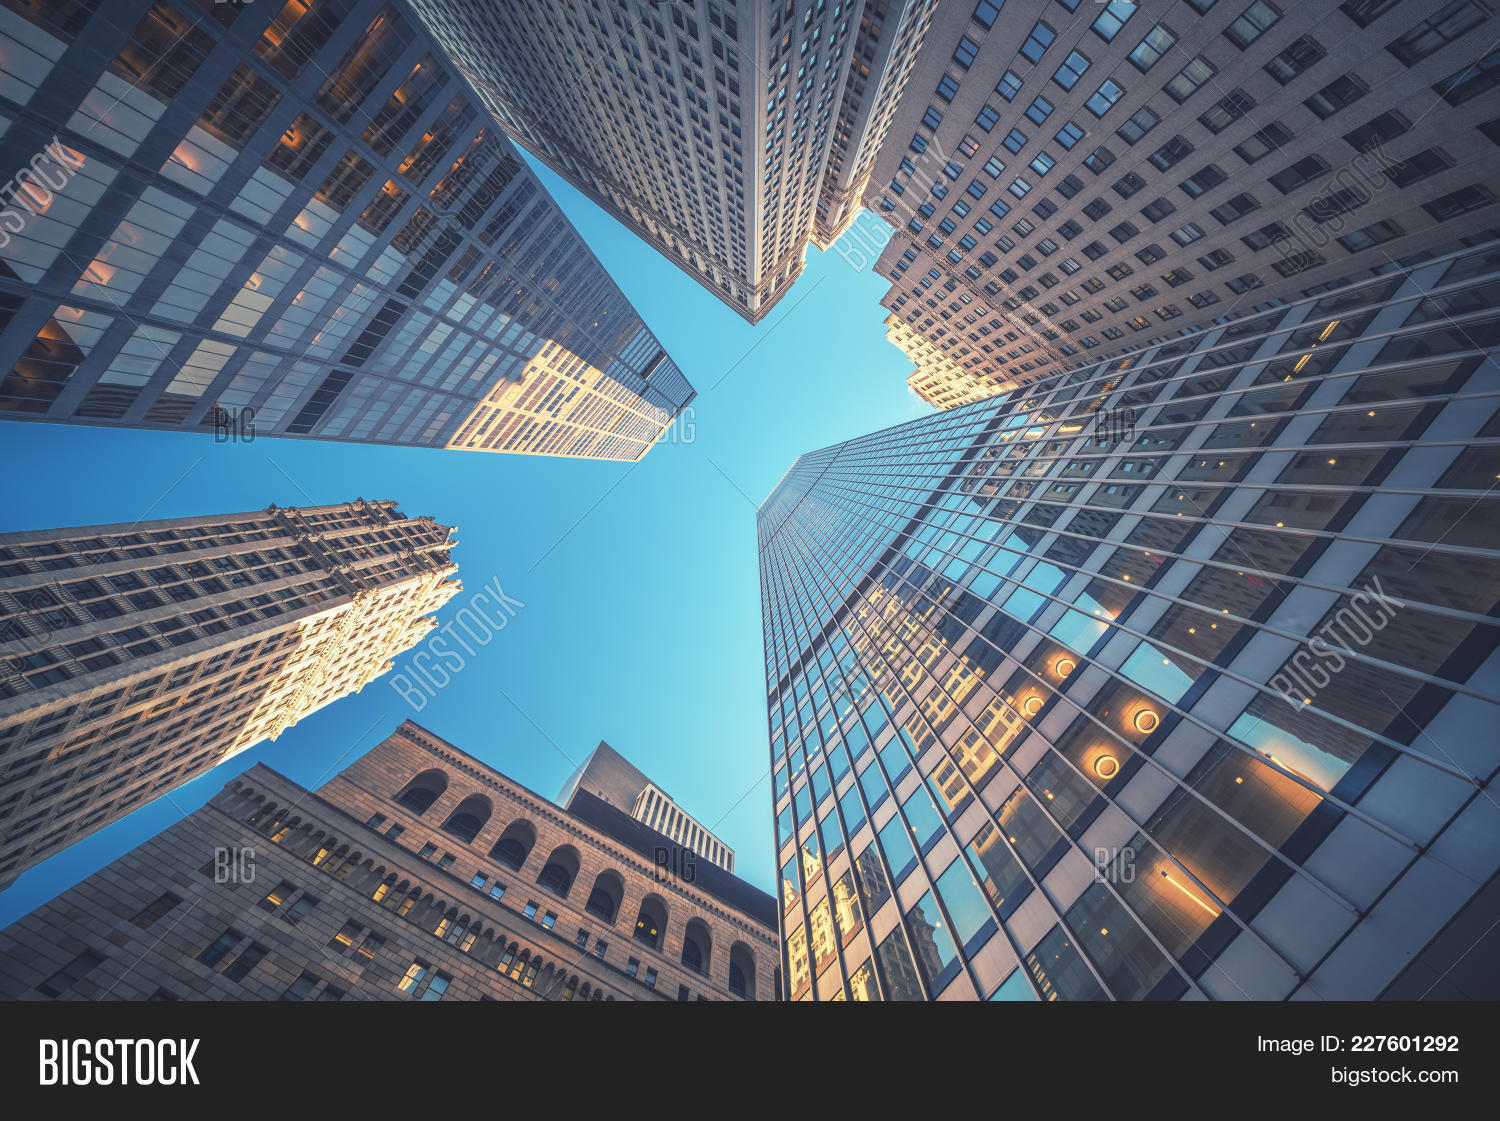 abstract,architecture,blue,building,business,center,city,commercial,construction,contemporary,corporate,design,downtown,economy,exterior,facade,finance,financial,futuristic,geometric,glass,light,manhattan,modern,new york,office,pane,pattern,perspective,property,public,real,reflect,reflection,simple,sky,skyscraper,steel,street,structure,success,sun,tall,technology,top,transparent,urban,wall,wall street,window